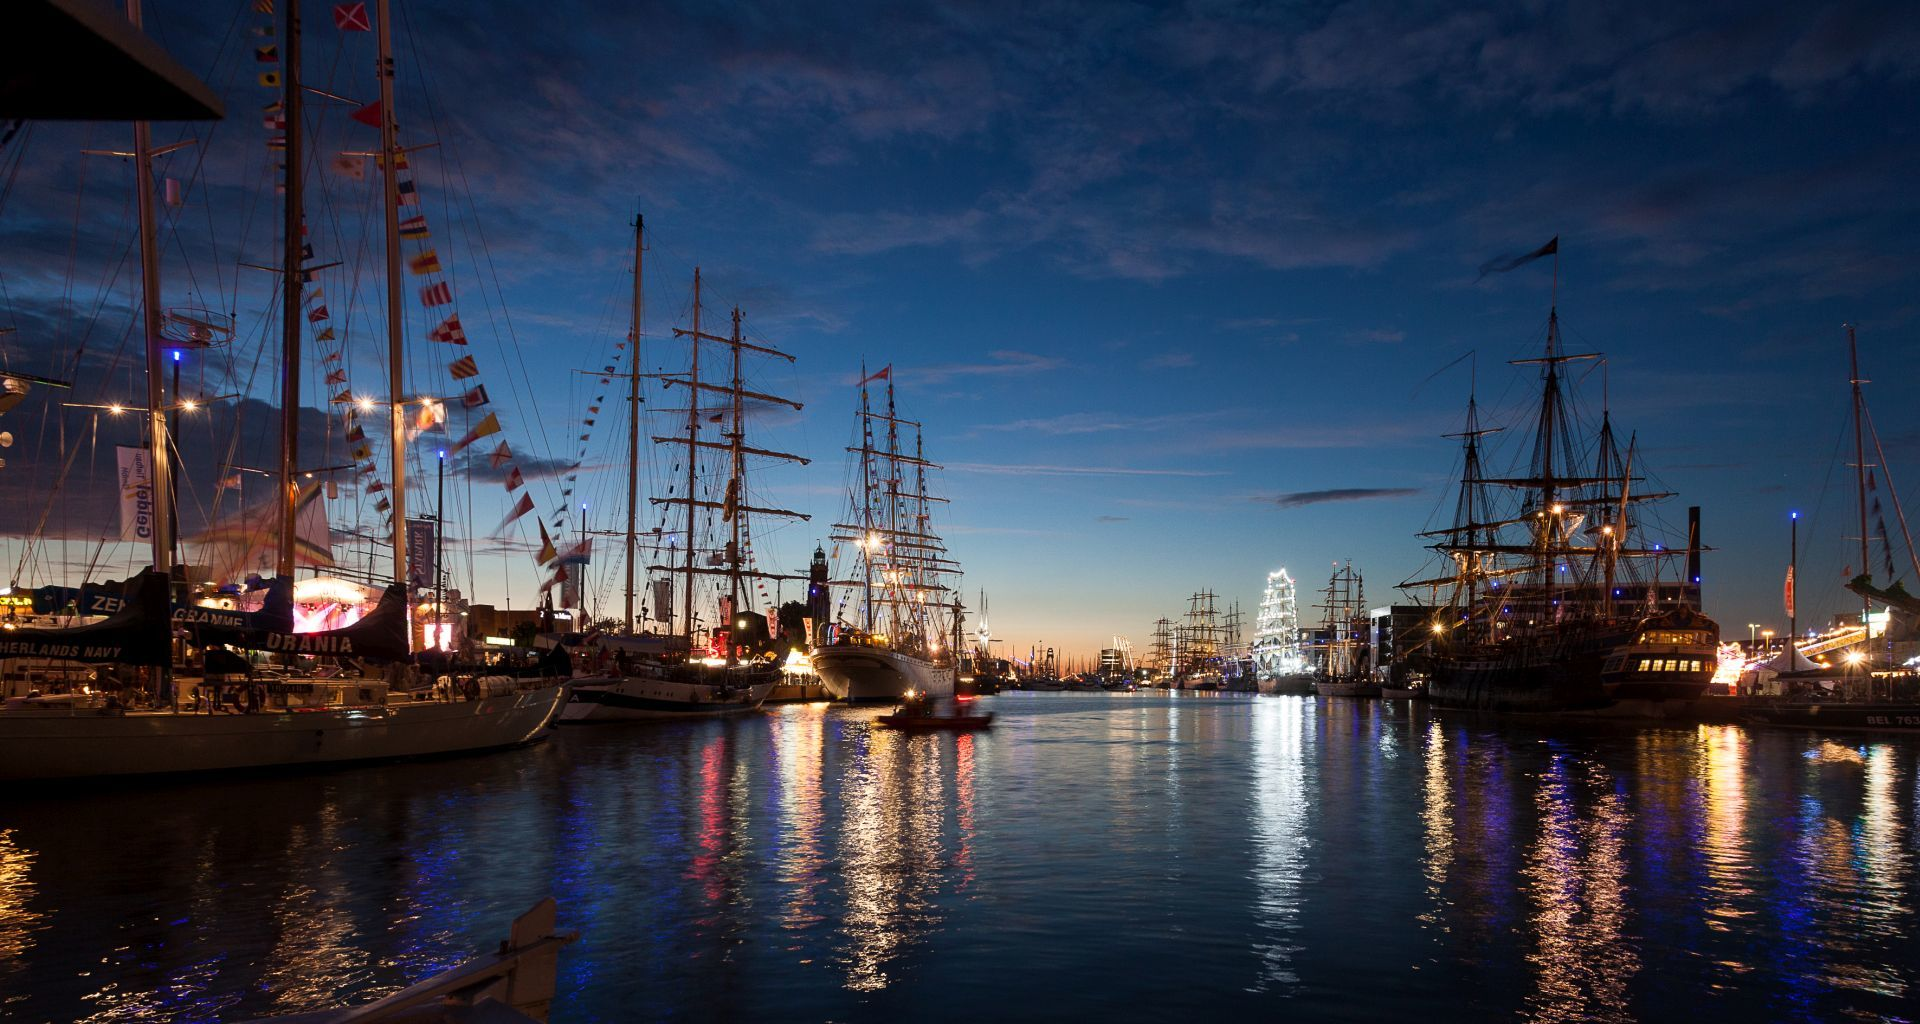 Night shot of the New Harbor with many illuminated sailing ships for the SAIL Bremerhaven 2015.